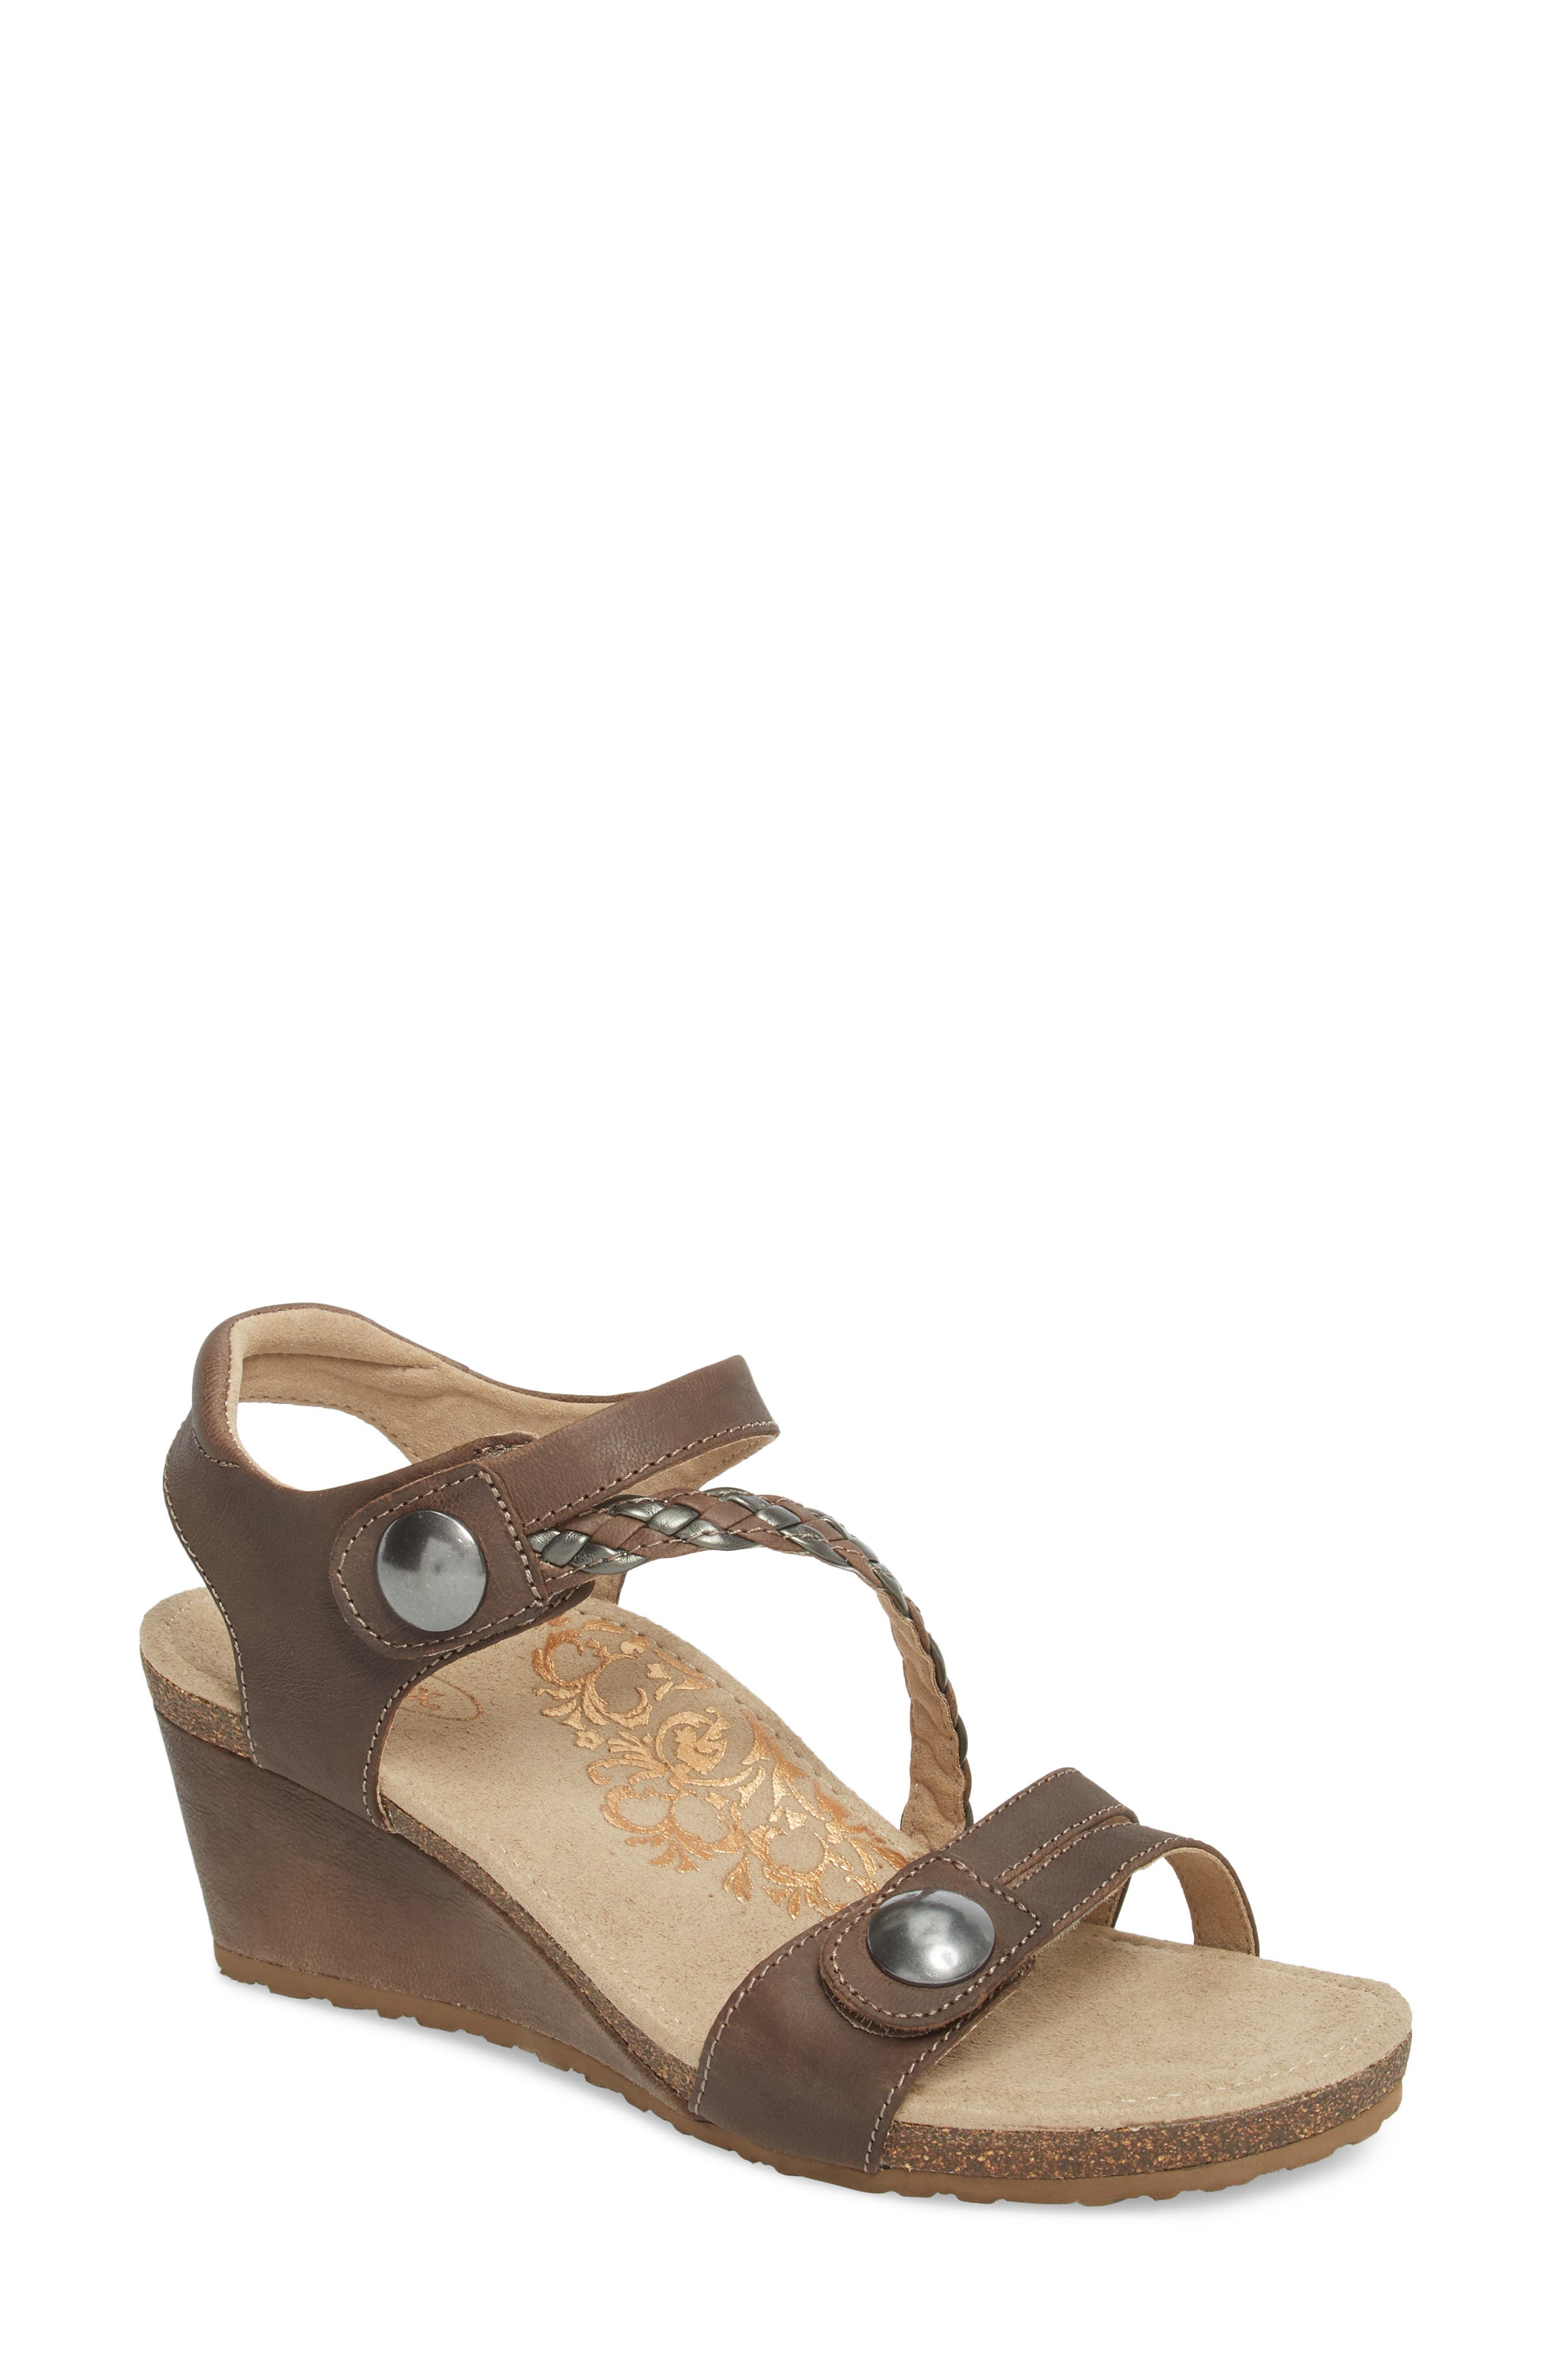 'Naya' Wedge Sandal,                             Main thumbnail 1, color,                             STONE LEATHER